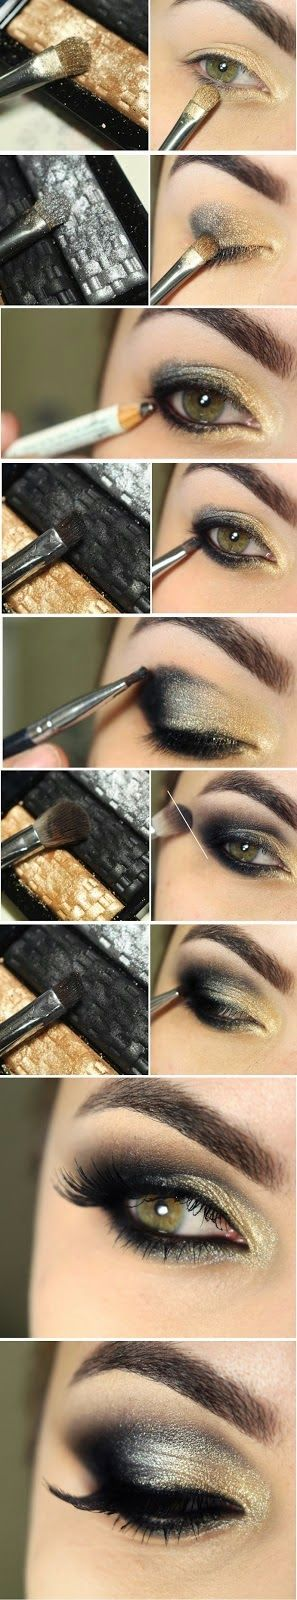 Wonderful gold with smokey eye makeup tutorials be-jewel.com